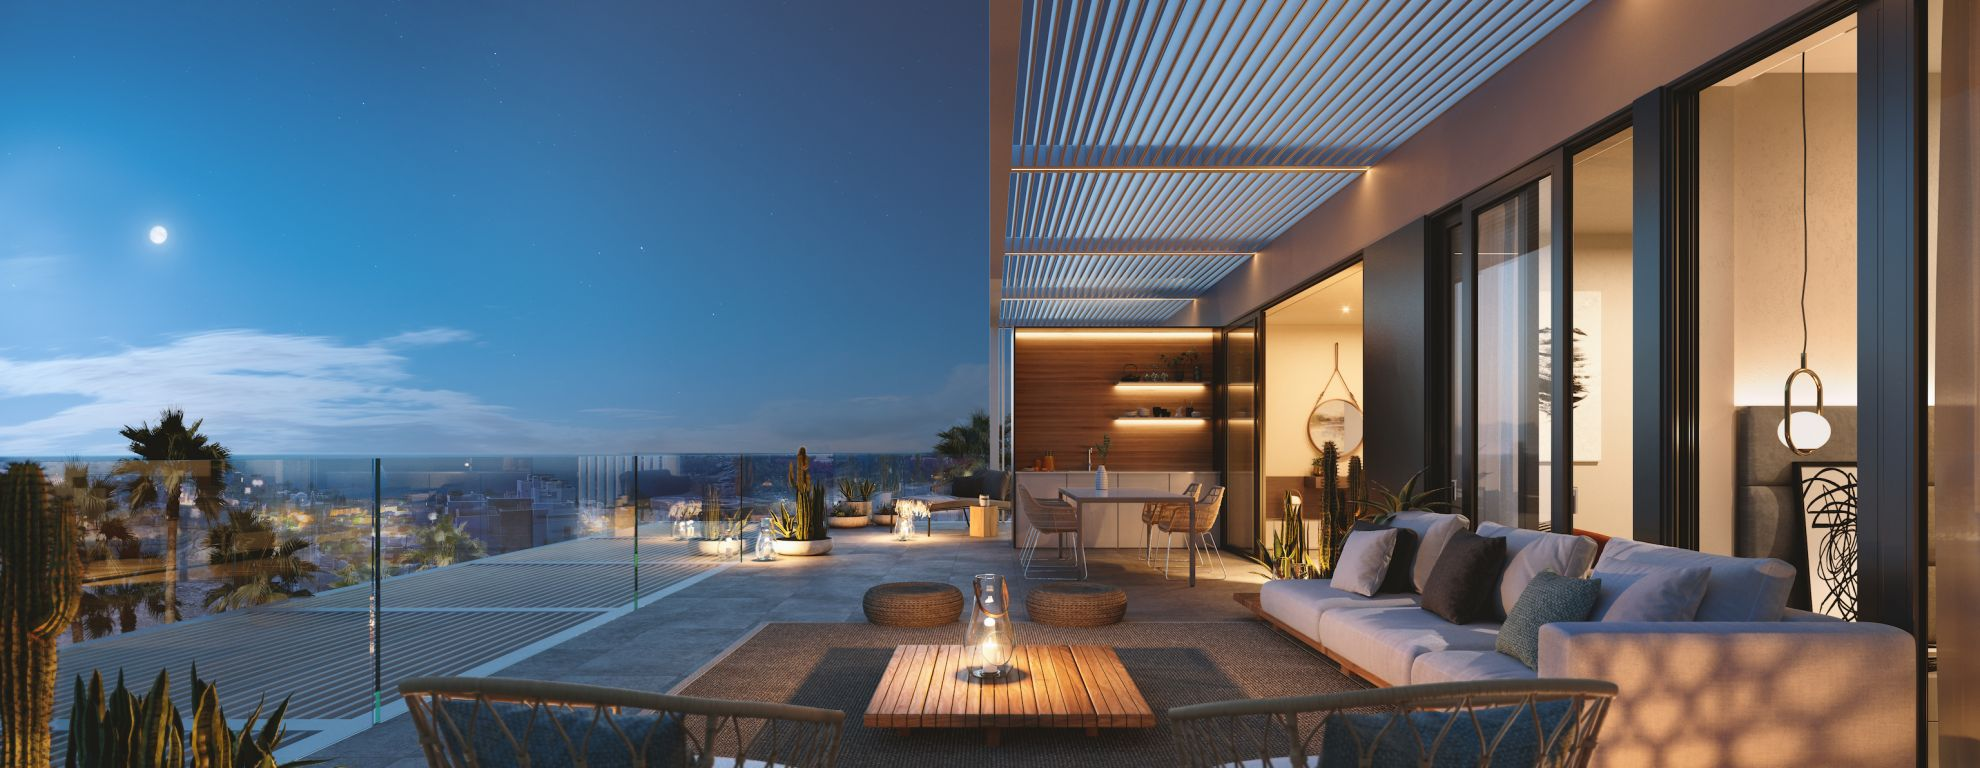 2 and 3 bedroom penthouse-style apartments with big terraces overlookg the sea. House 26 12